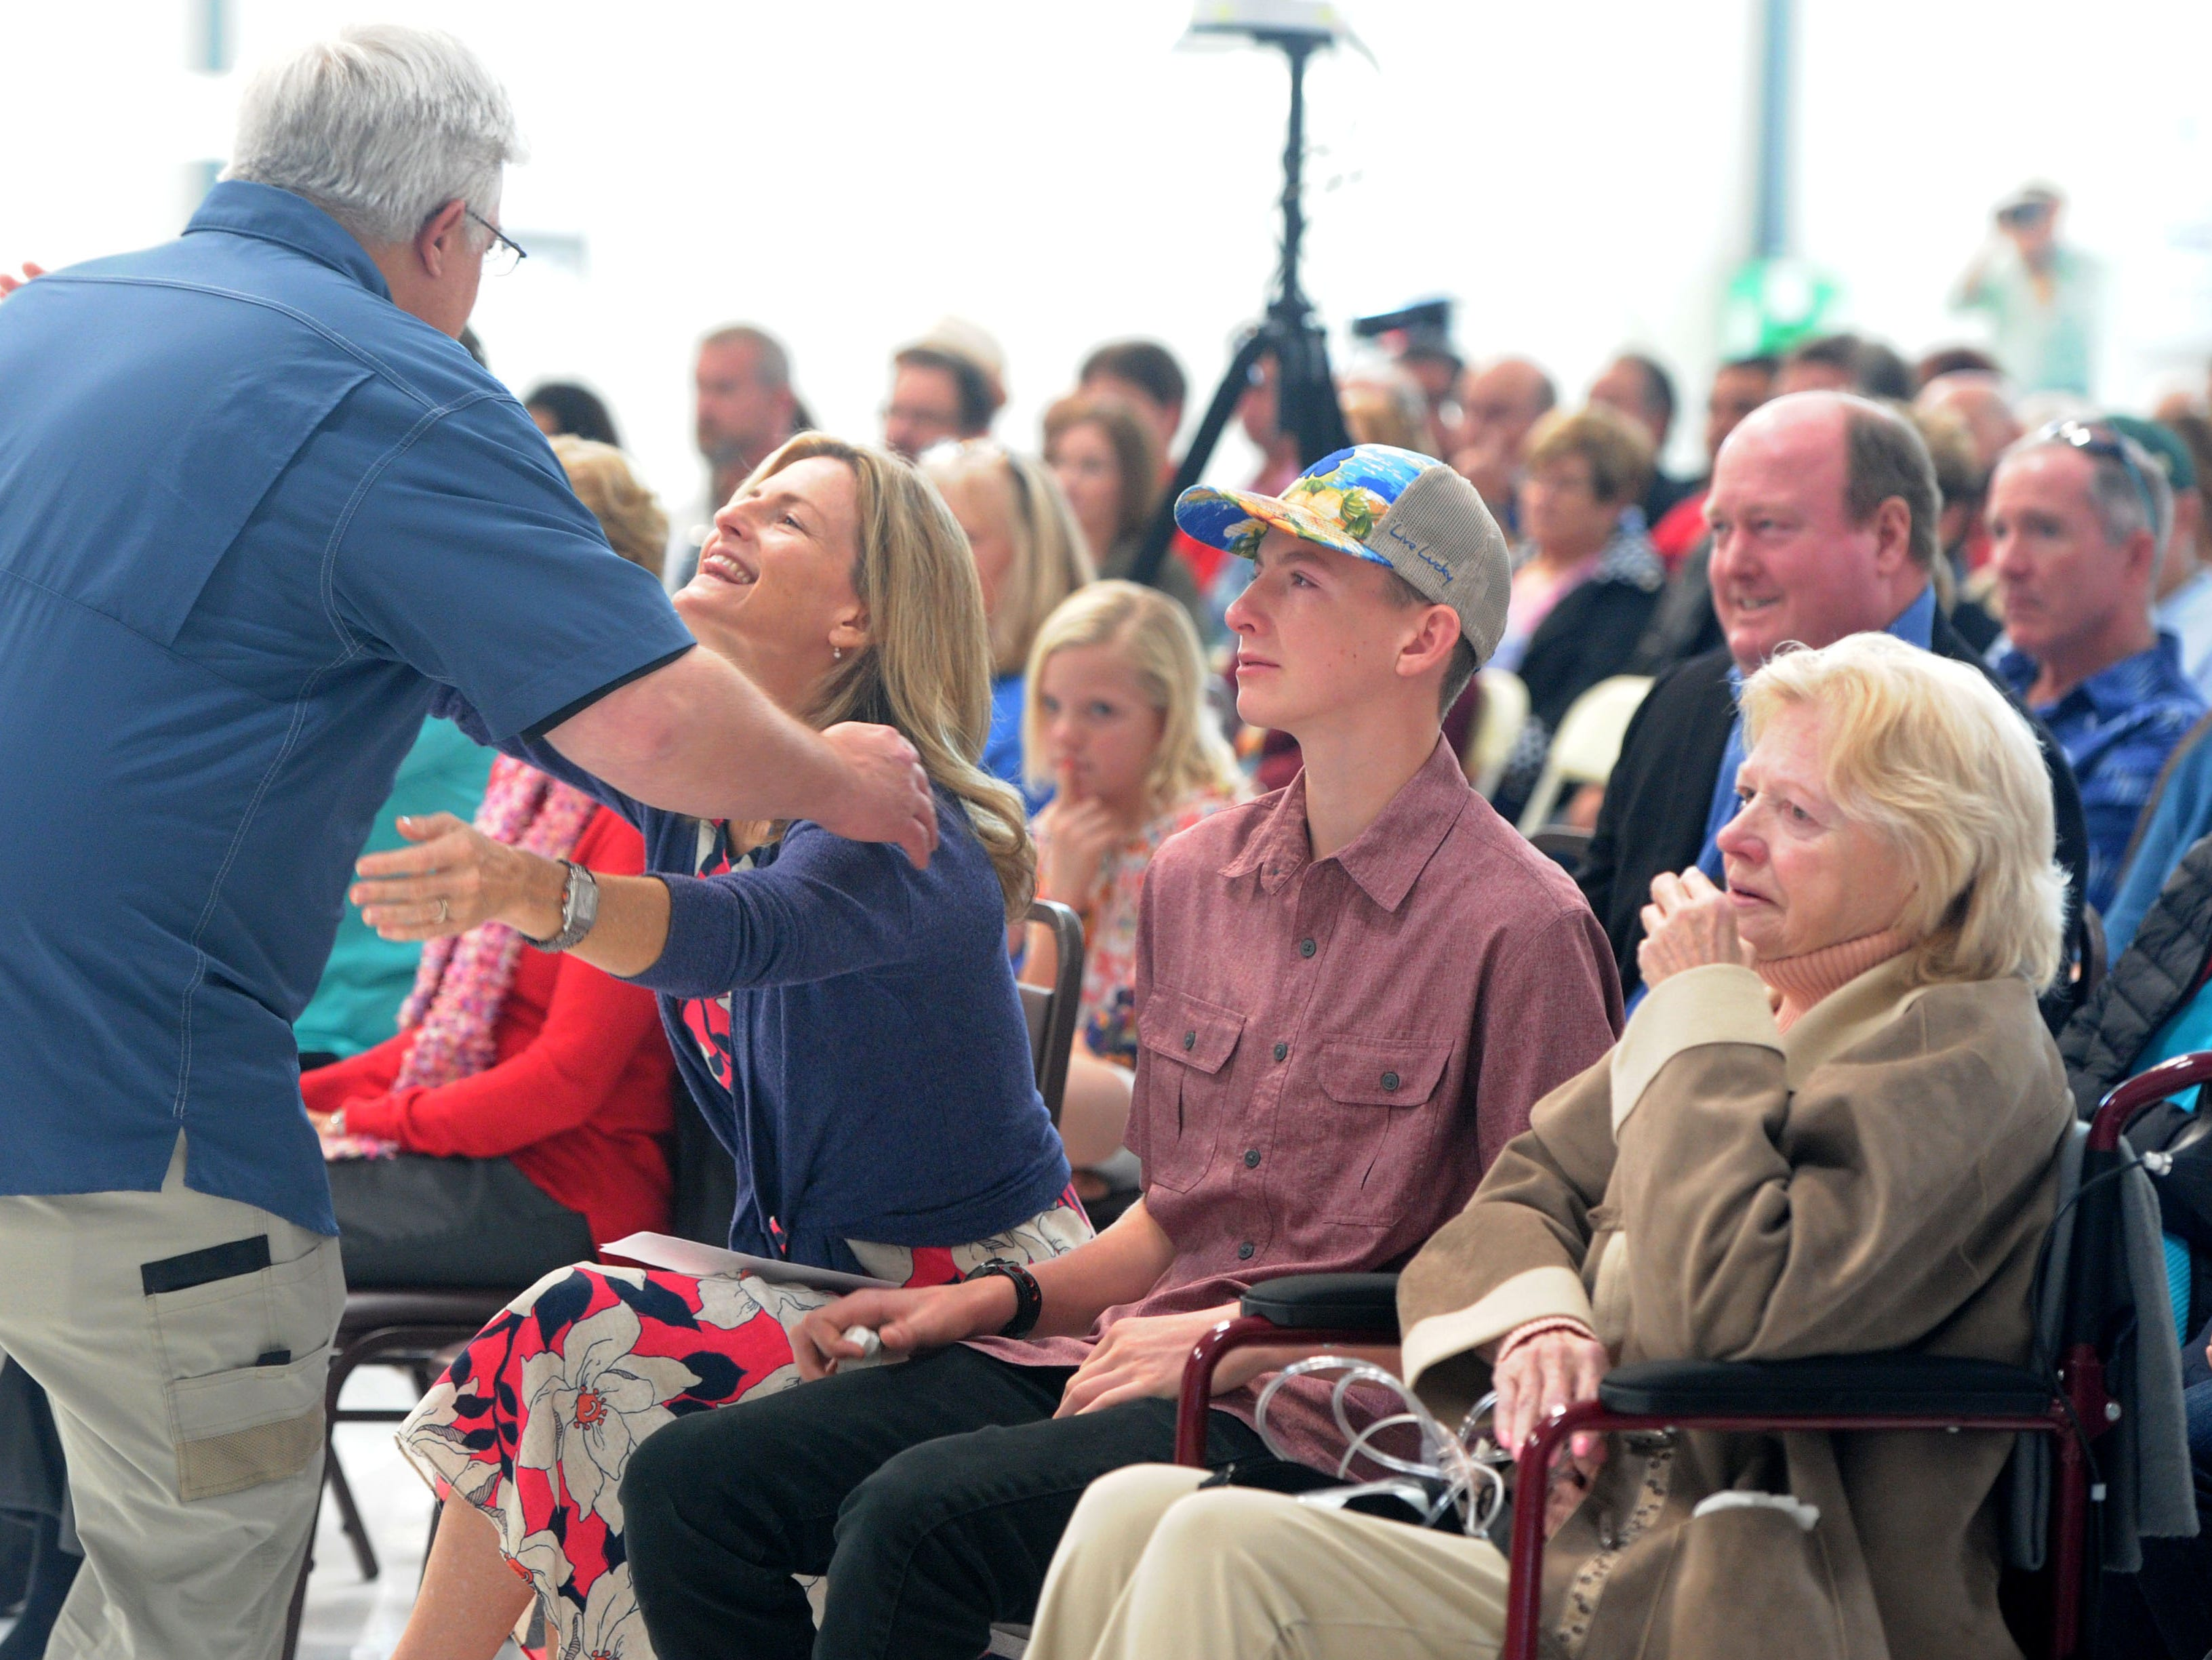 Nick Altizer, hugs Ann McNamee after his speech during a ceremony remembering her late husband, Todd McNamee, at the Camarillo Airport.